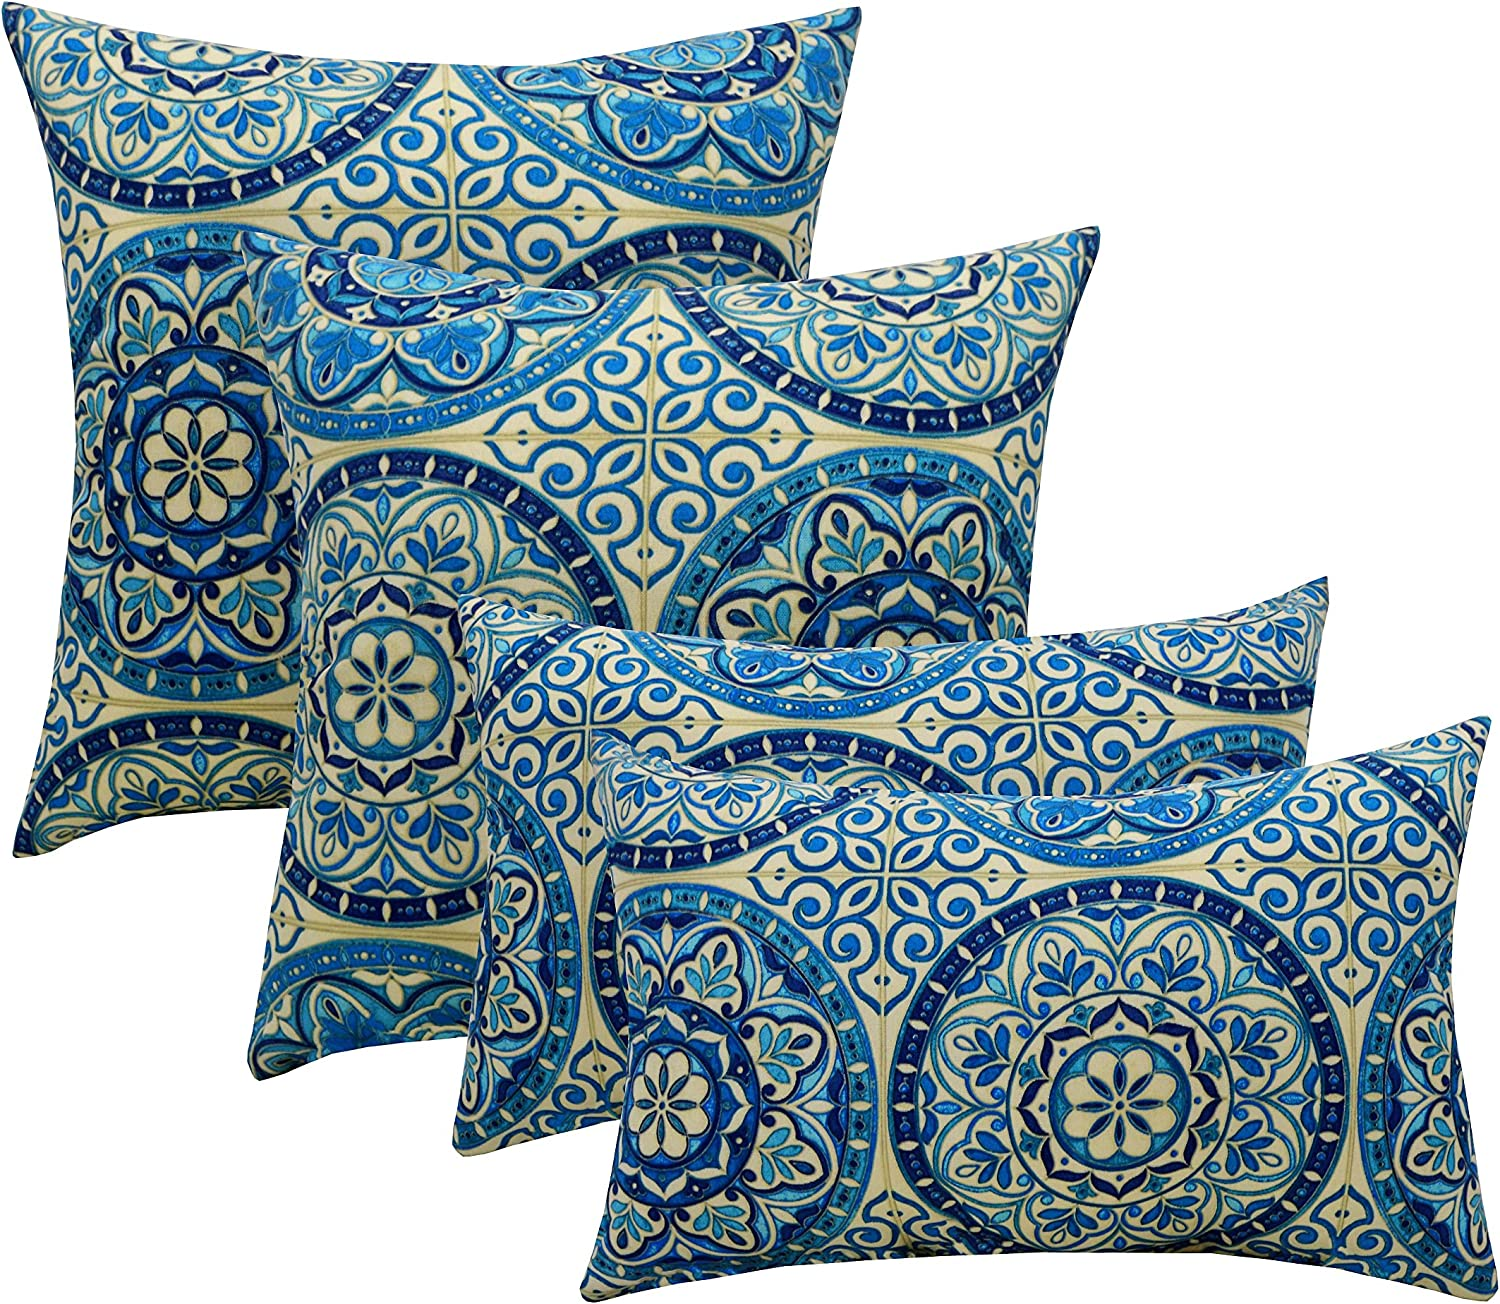 Frontgate Outdoor Yard Patio Pool Throw Pillow Brown Blue White Red Hourglass 20